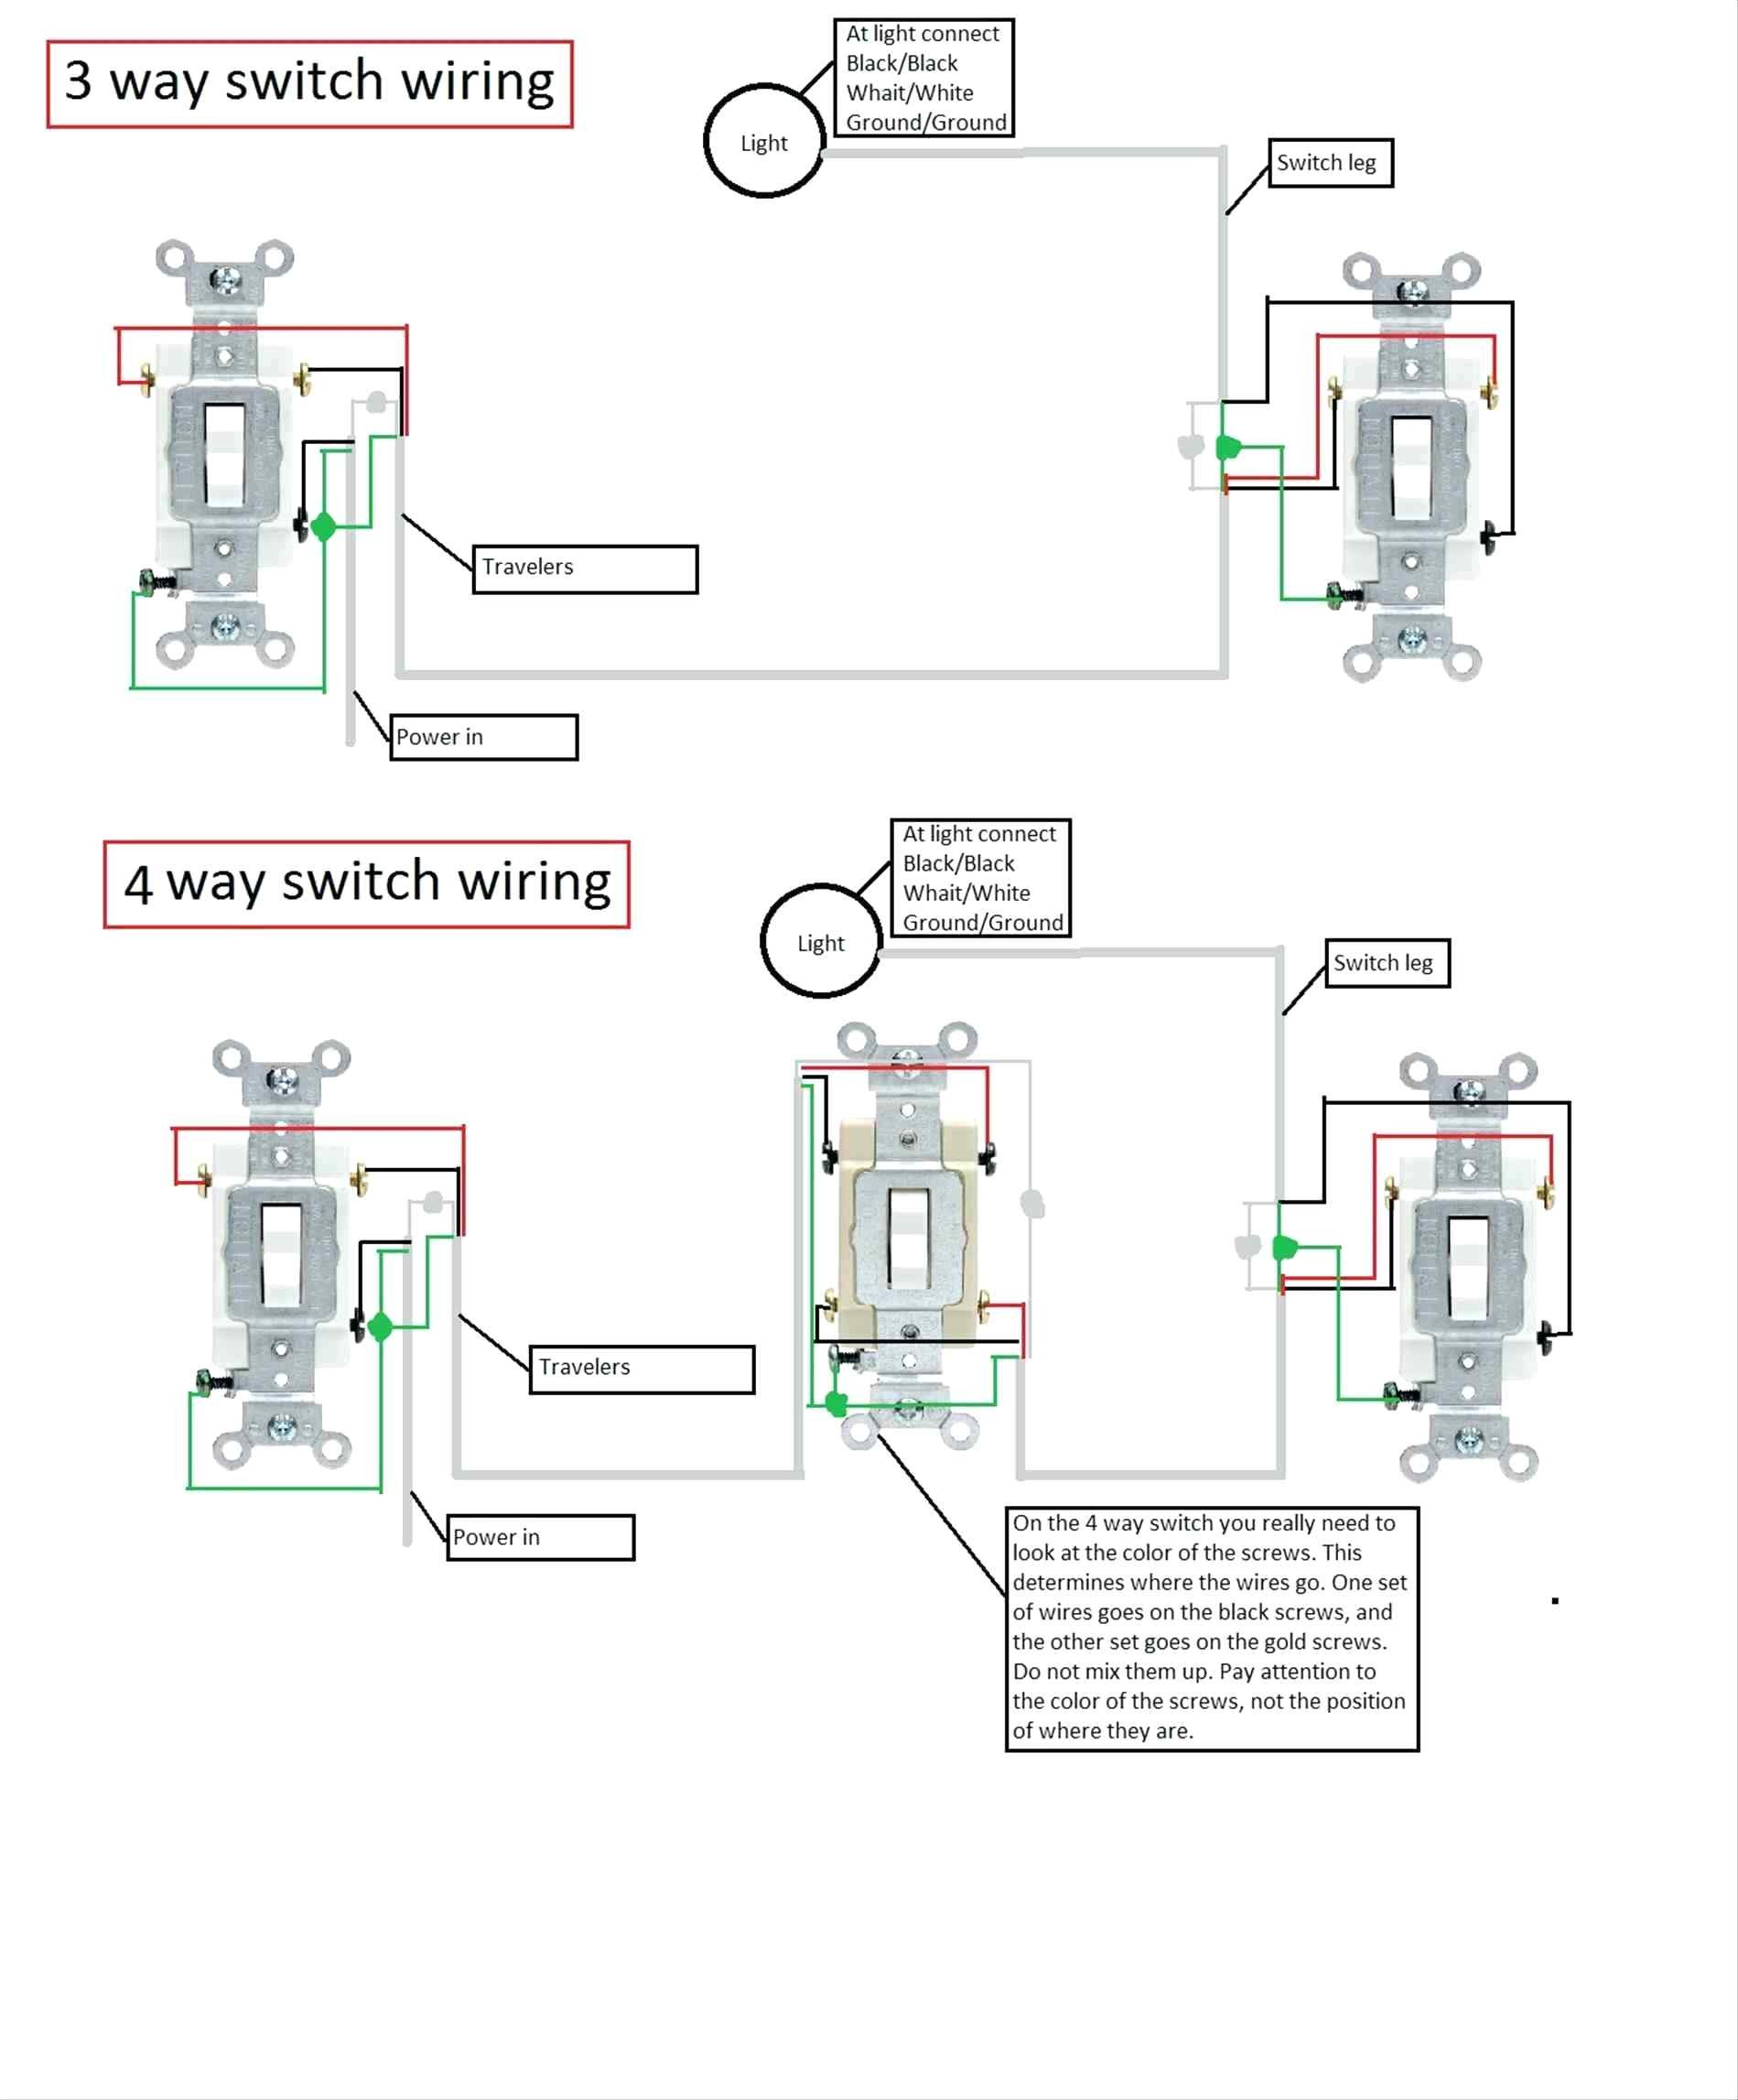 Pmi Wiring Diagram | Wiring Diagram on